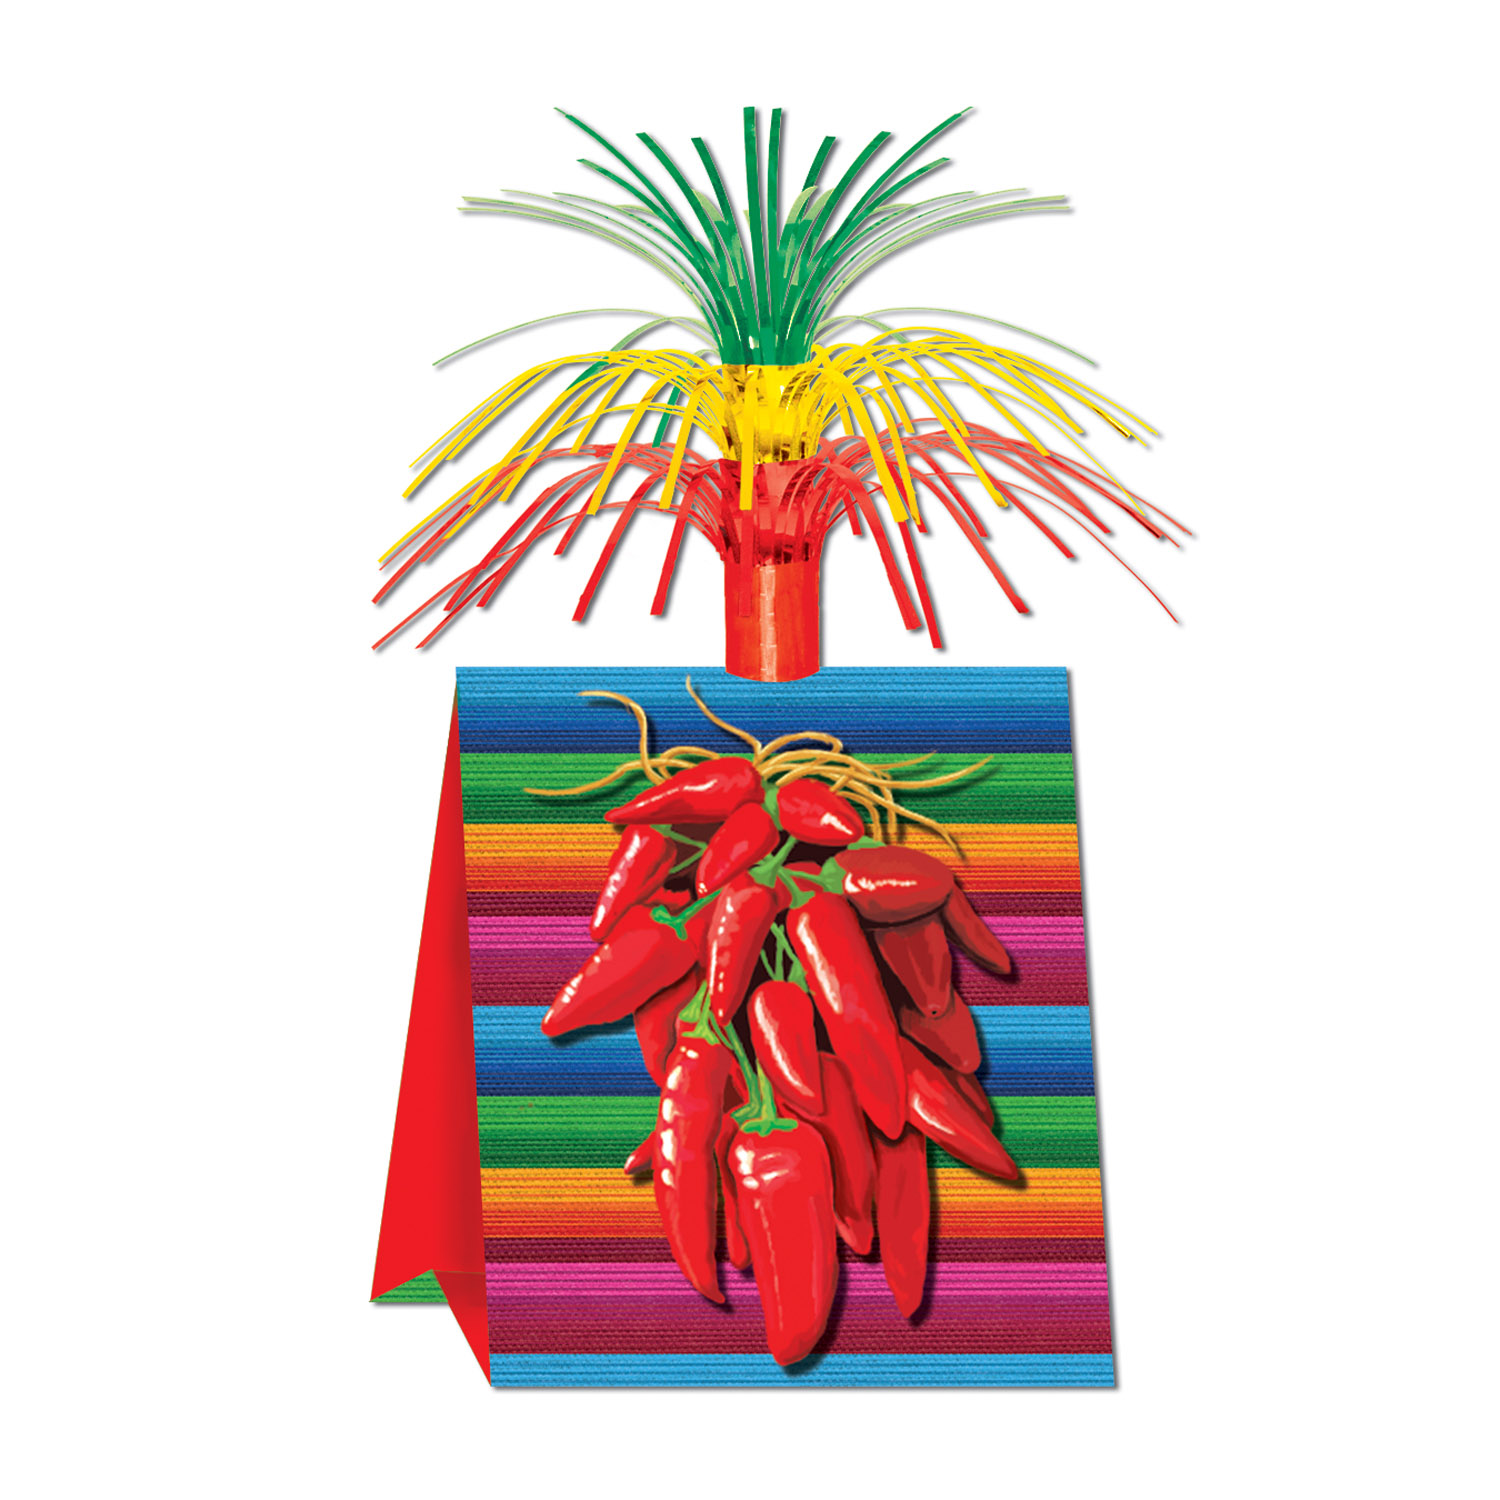 Chili Pepper Centerpiece (Pack of 12) Chili Pepper Centerpiece, centerpiece, cinco de mayo, decoration, wholesale, inexpensive, bulk